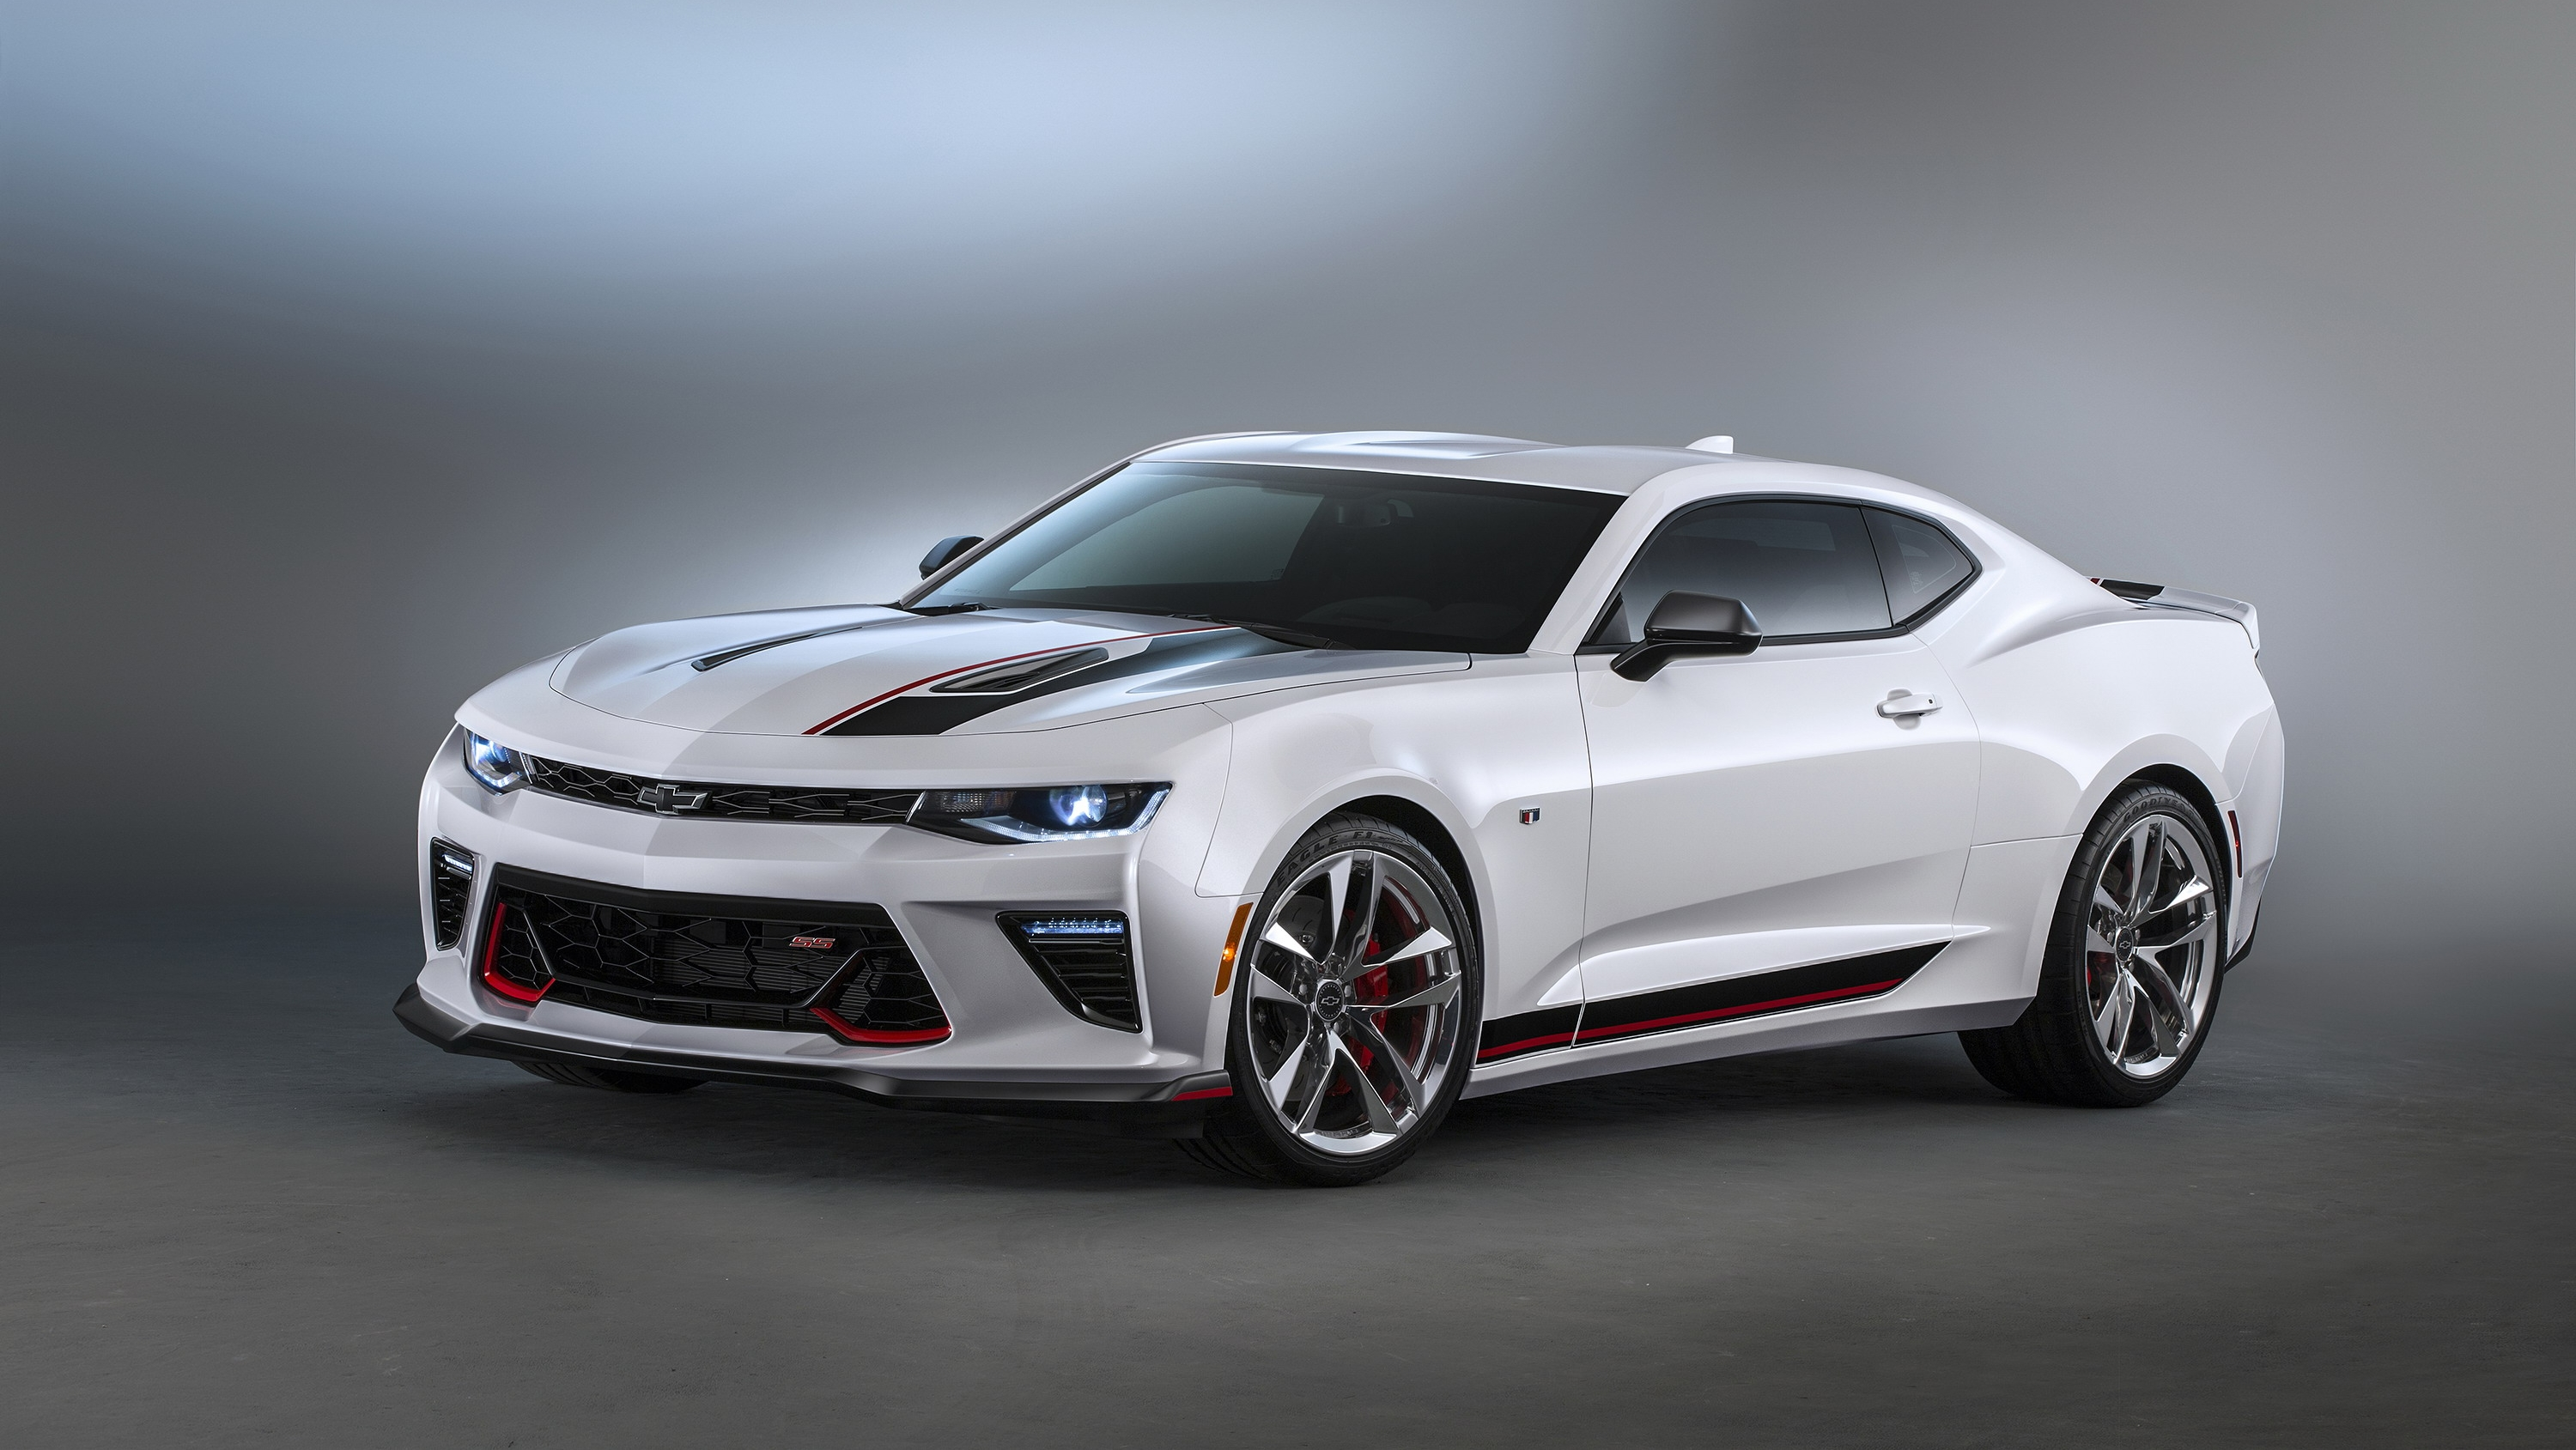 2016 chevrolet camaro performance concept review top speed. Black Bedroom Furniture Sets. Home Design Ideas